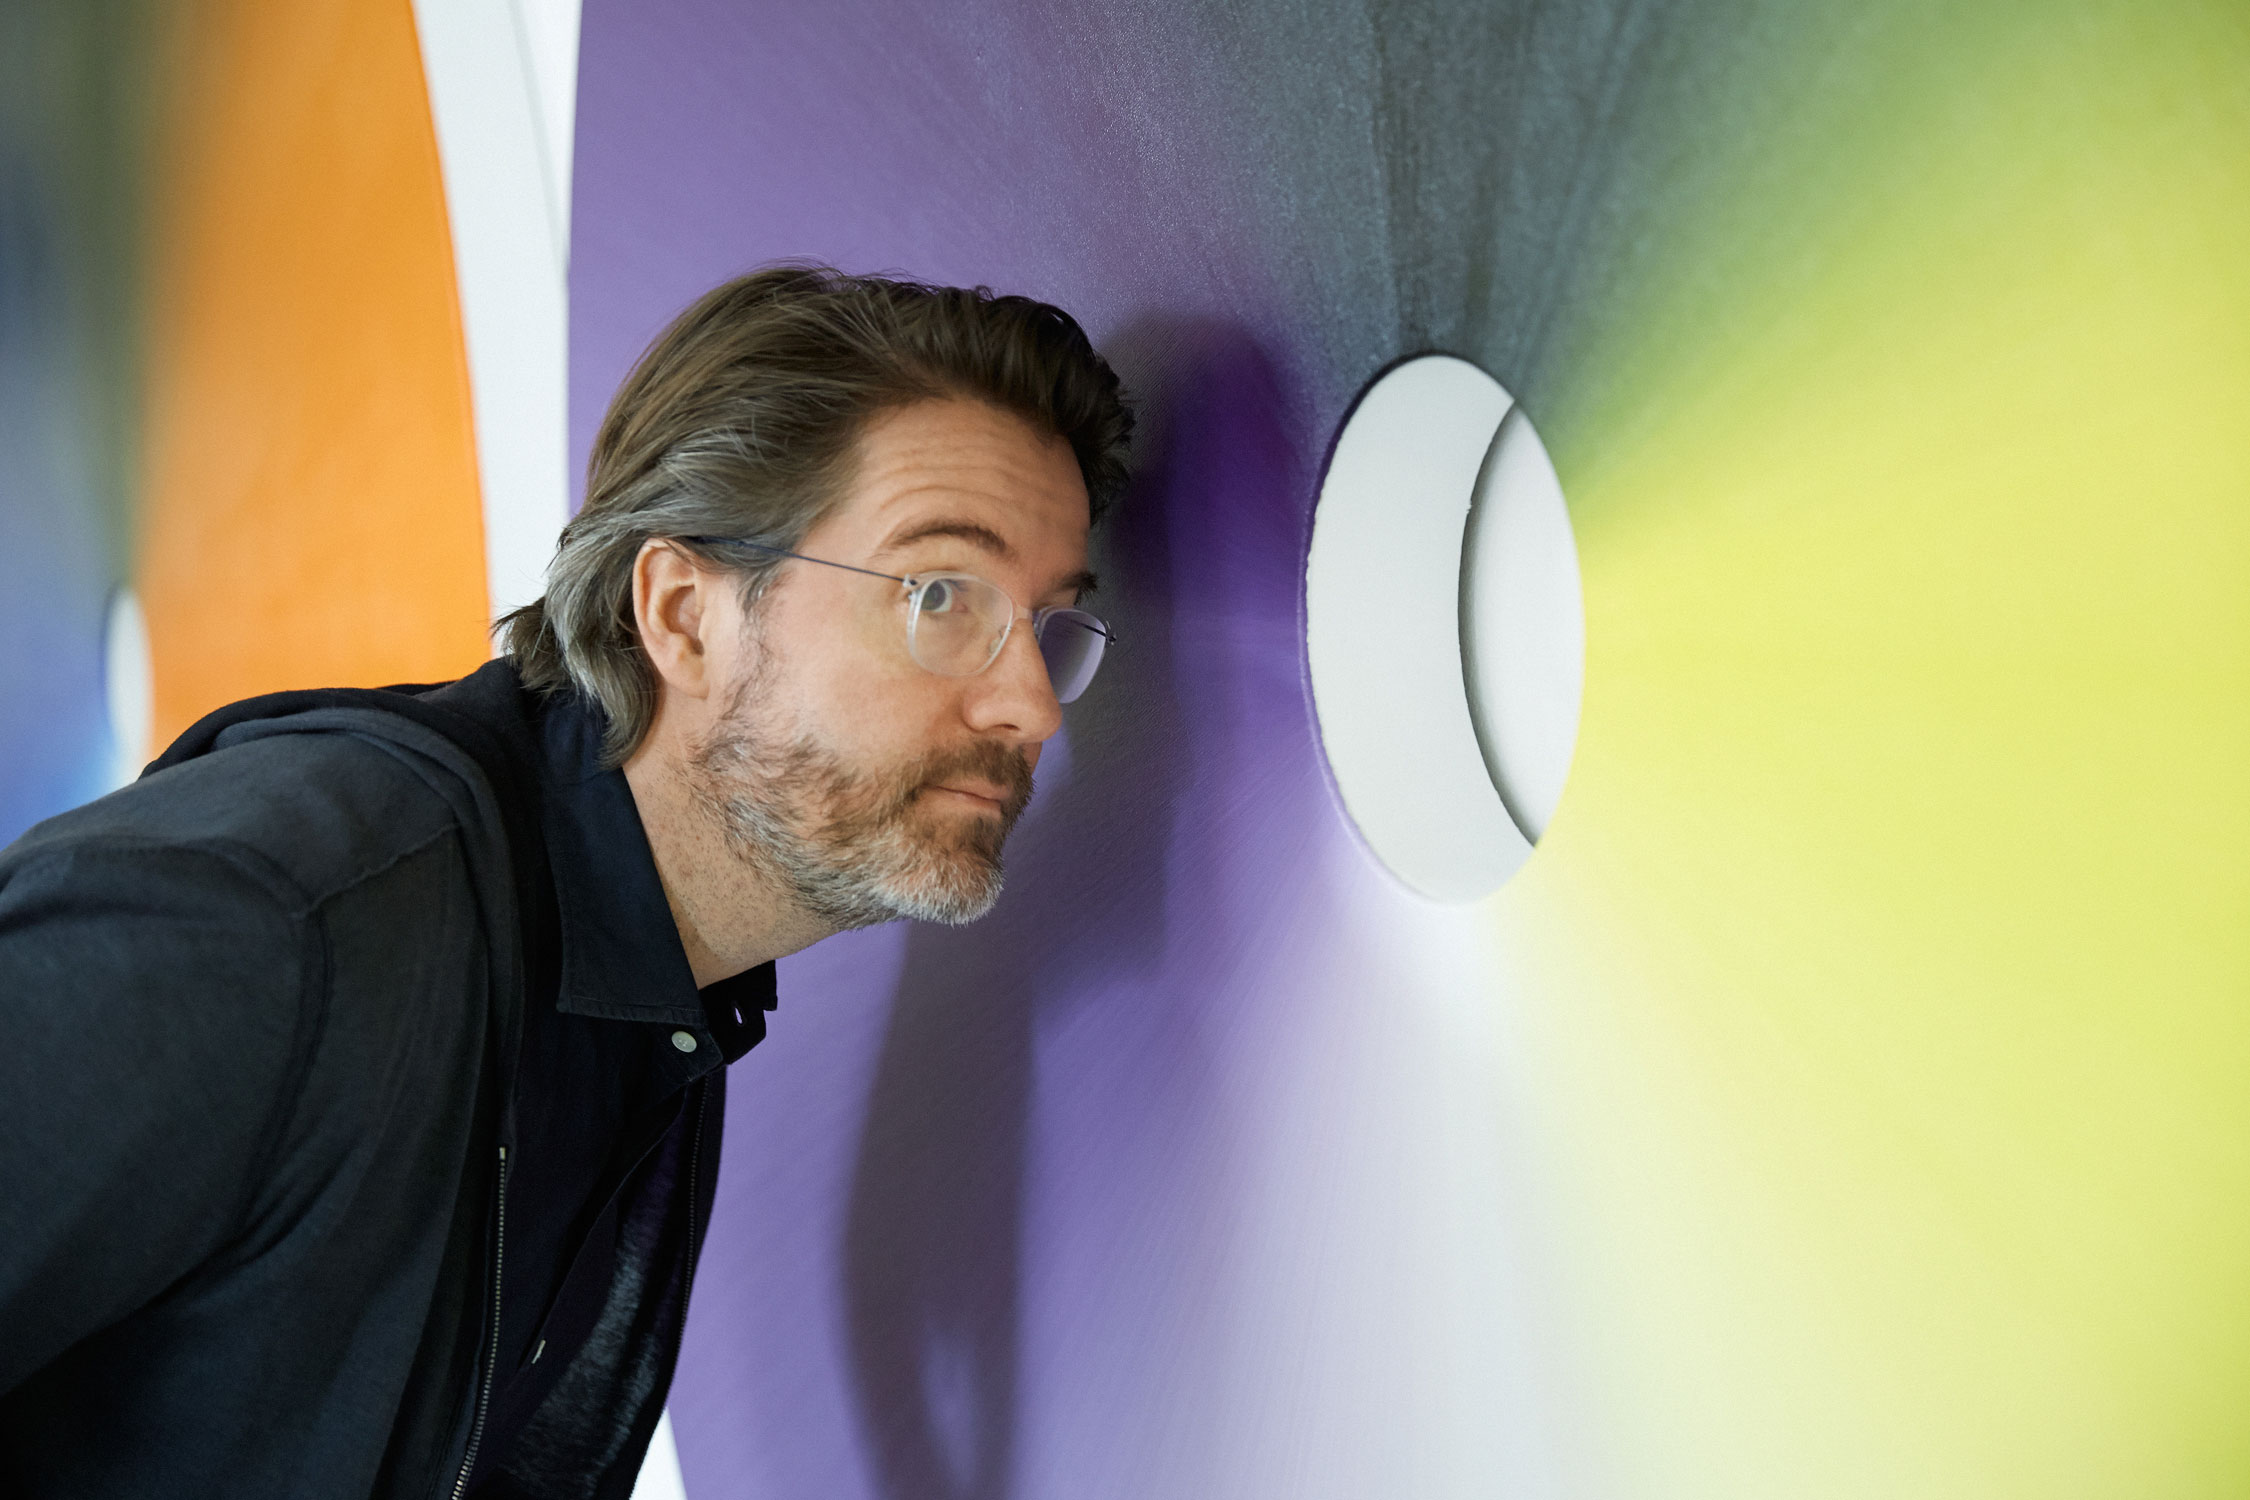 'Encountering a work of art is about recognition, about feeling listened to' - Olafur Eliasson on art, Experience and uncertainty